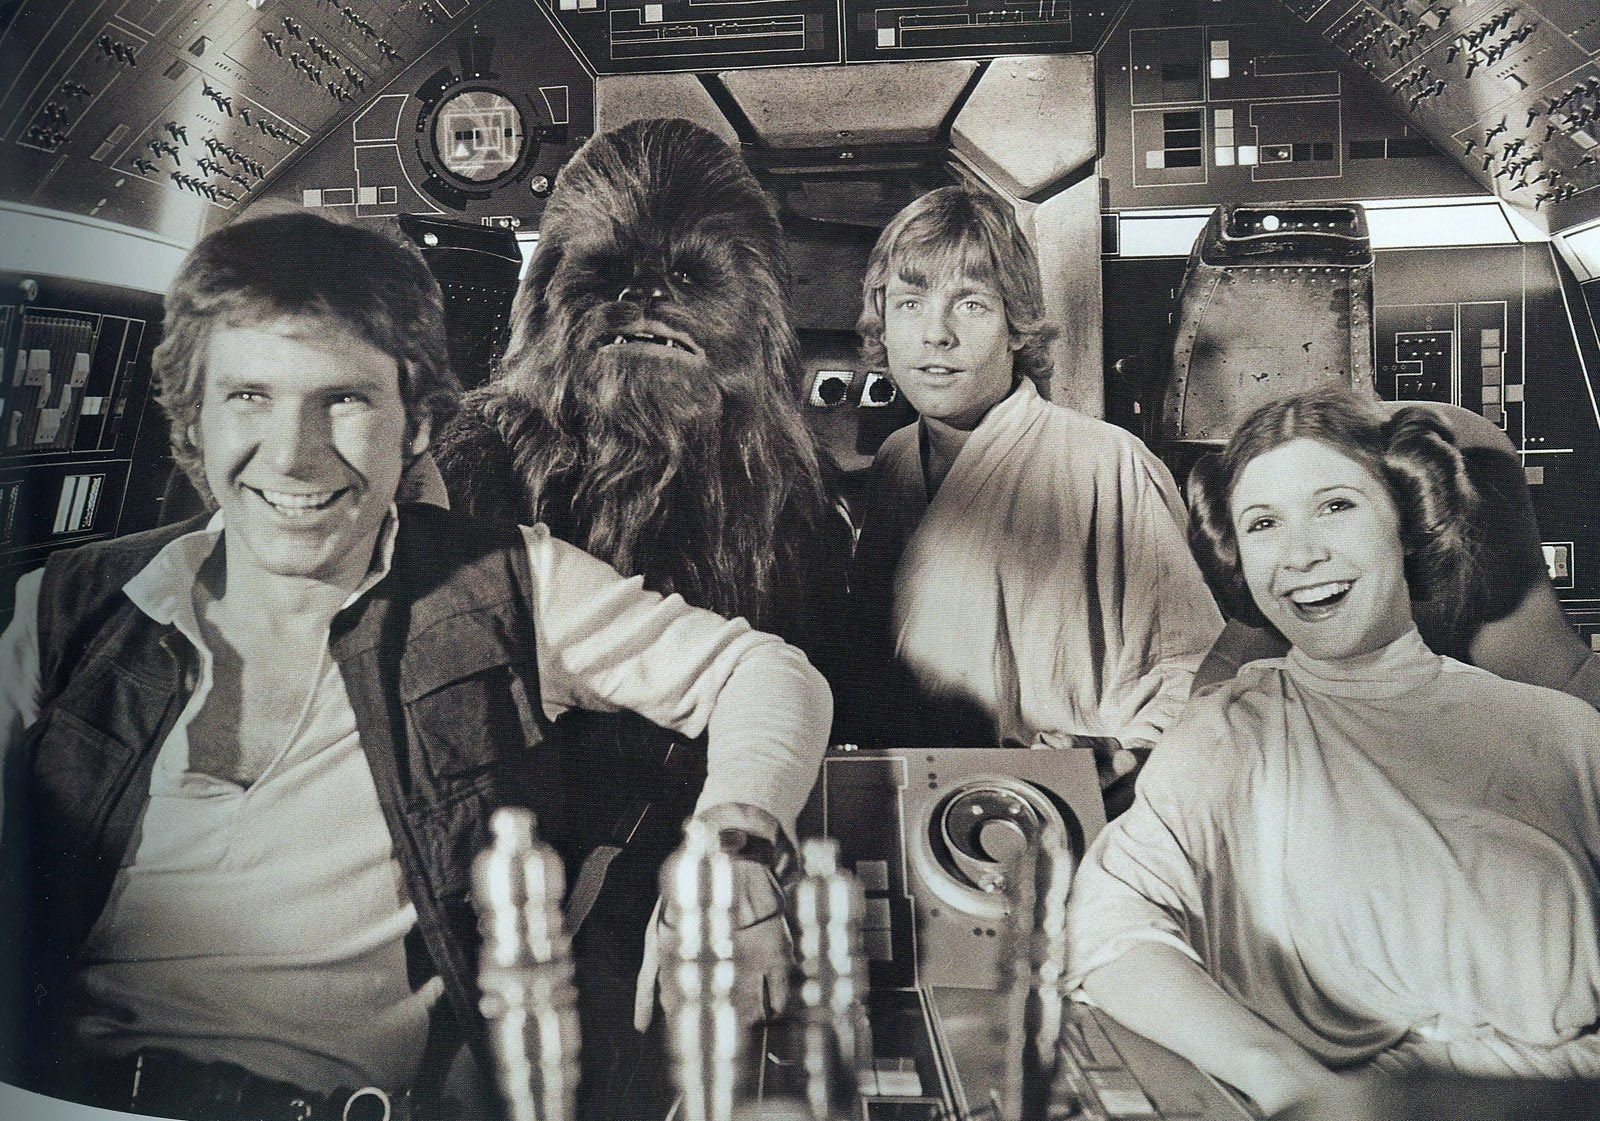 mnpkbrz-behind-the-scenes-photos-of-star-wars-episodes-1-6-and-much-more-jpeg-77769